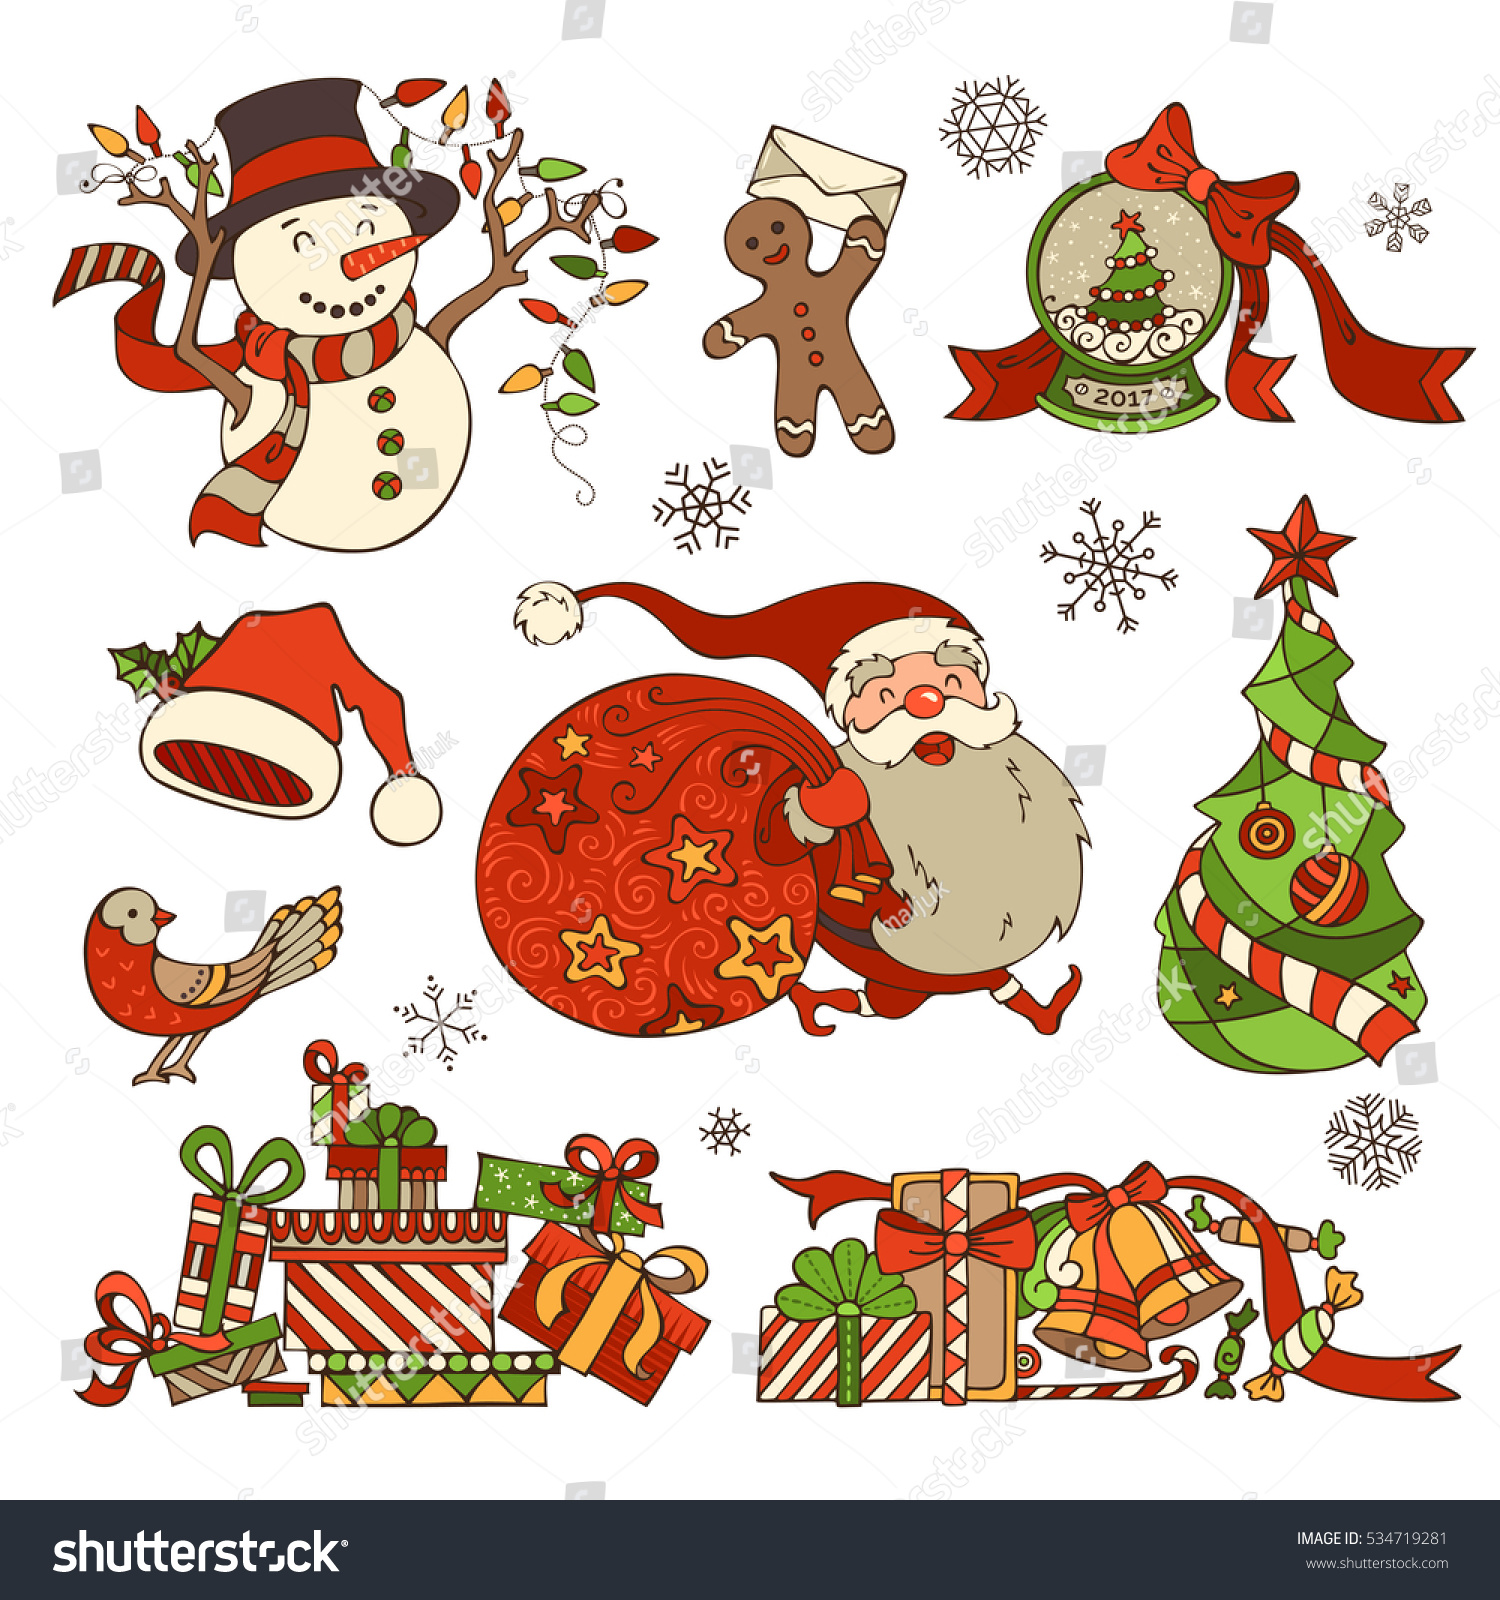 vector set of merry christmas decorations and design elements isolated on white background christmas tree